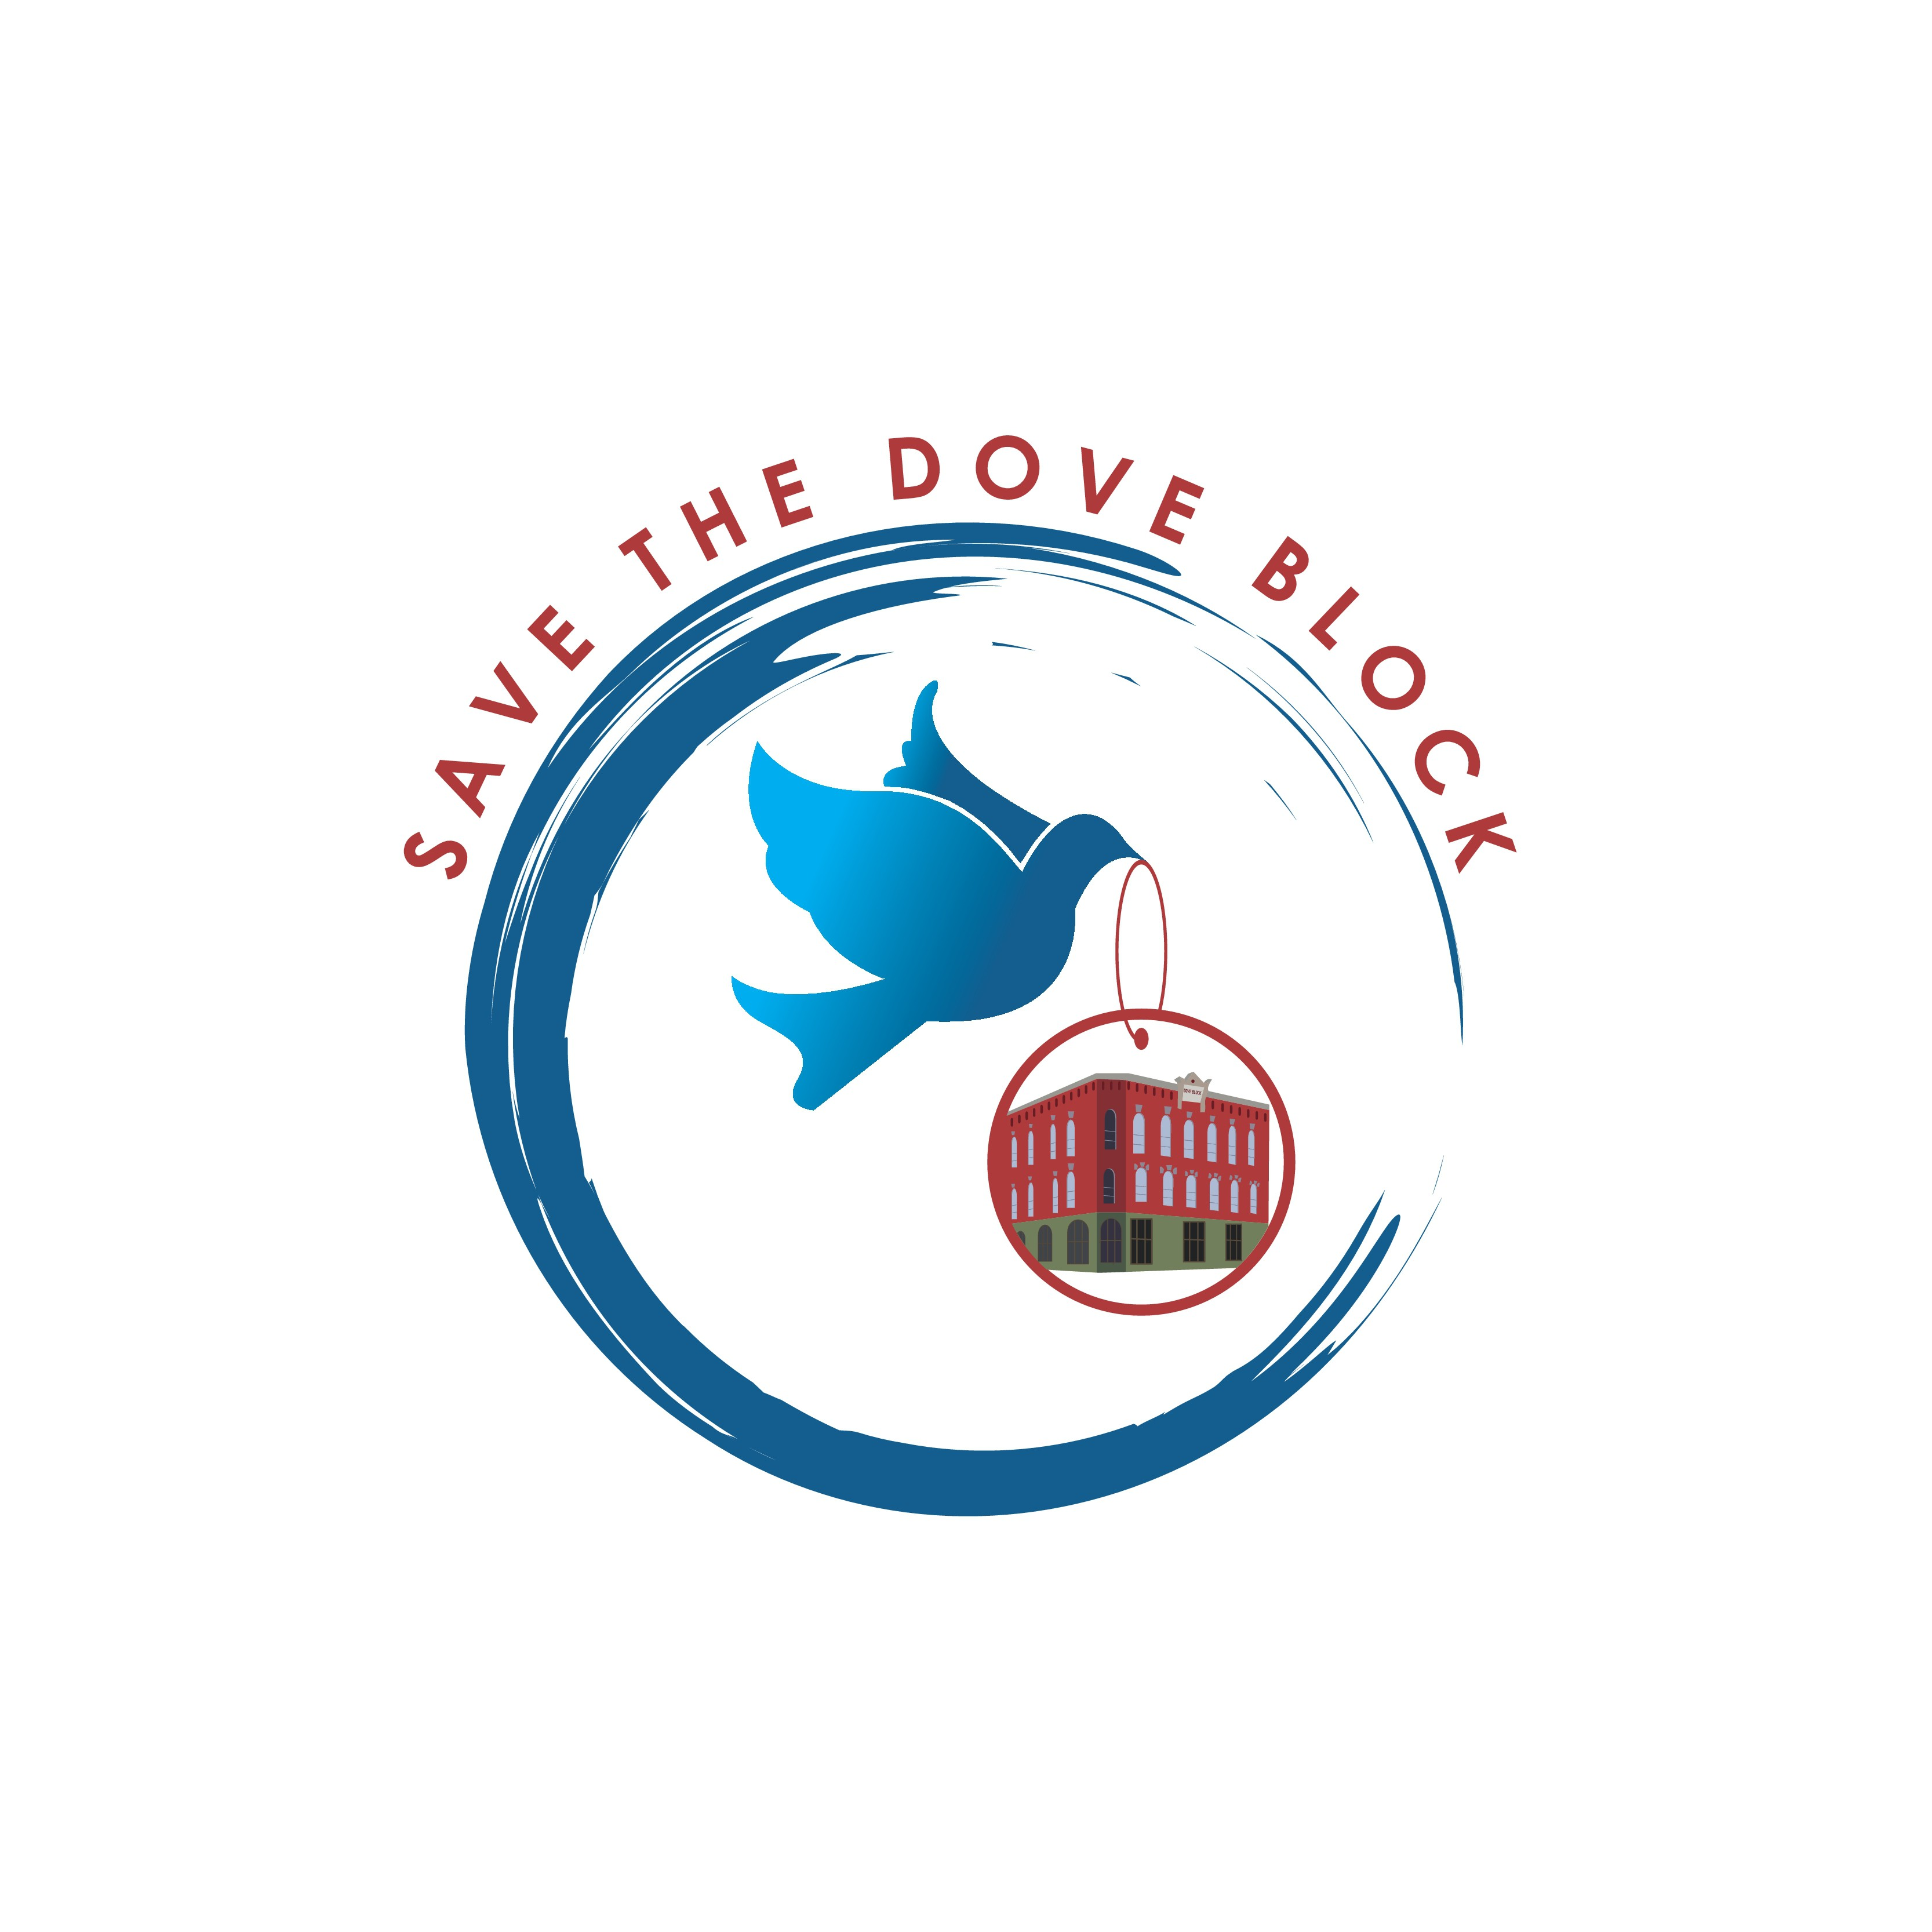 Save the Dove